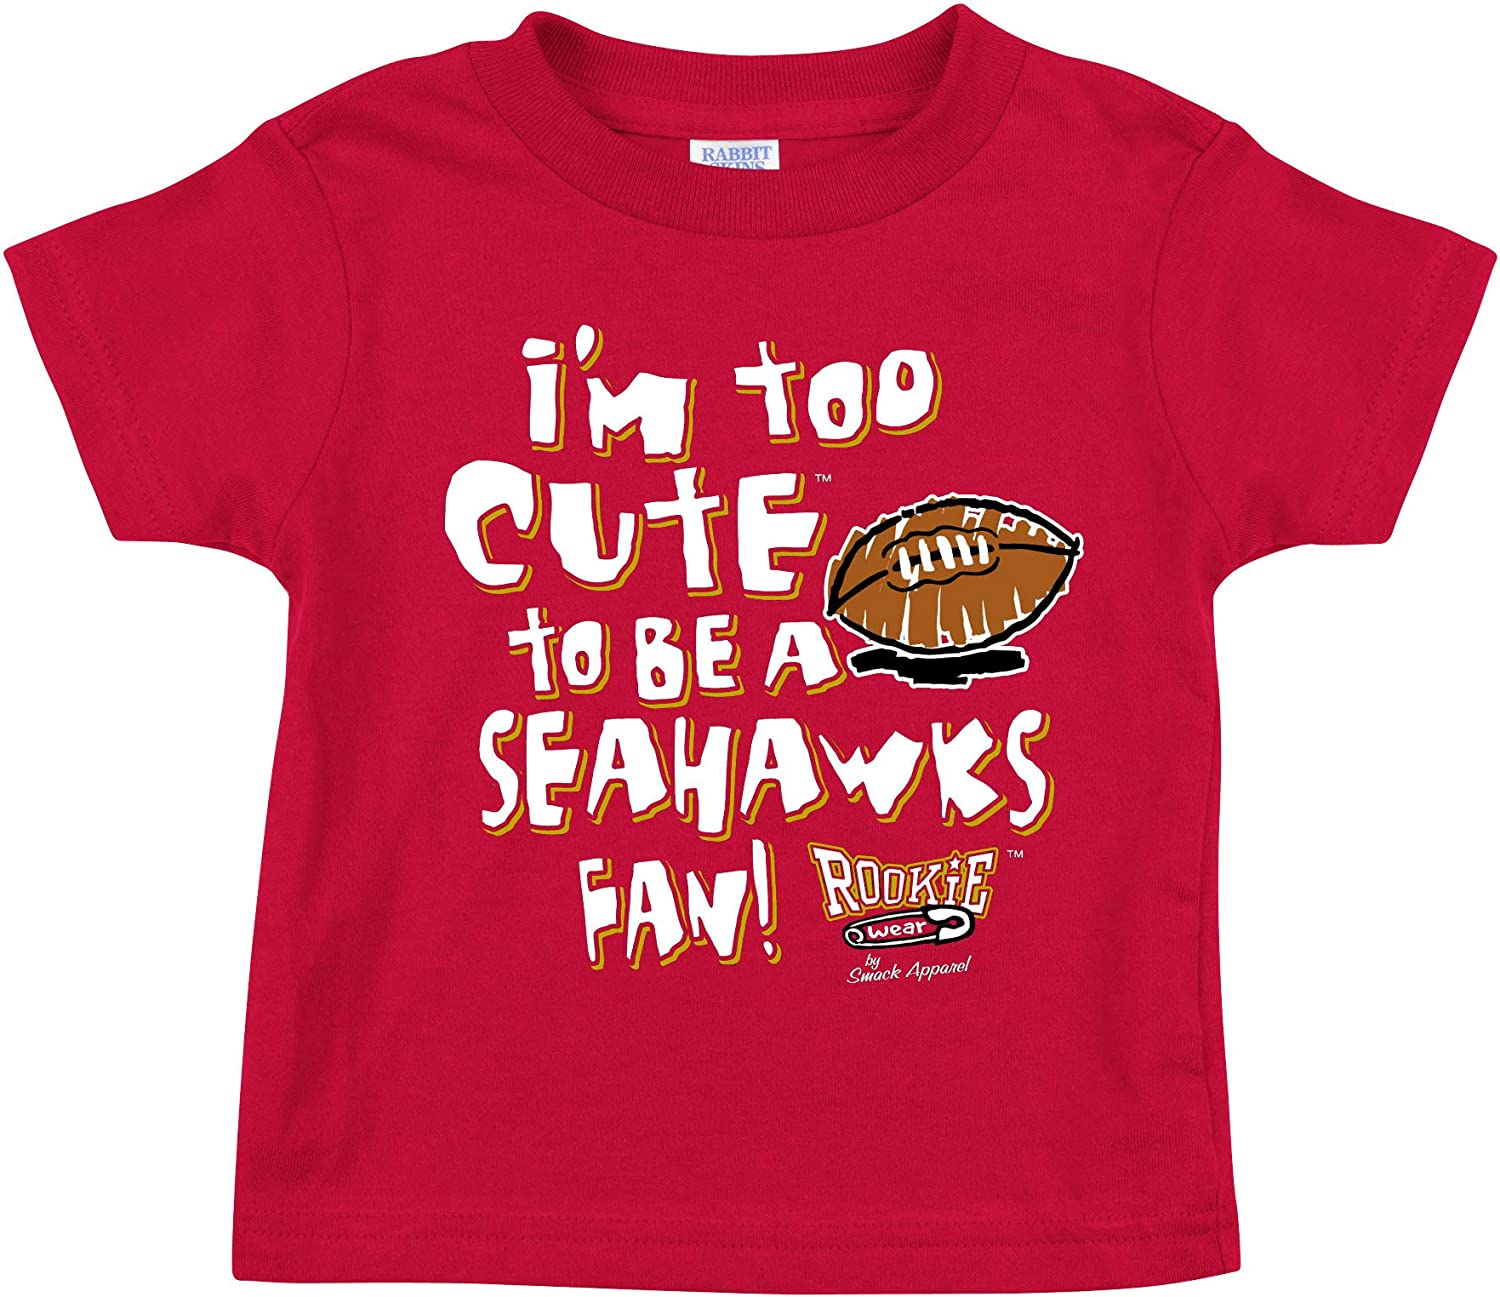 NB-4T Red Onesie or Toddler Tee Smack Apparel San Francisco Football Fans Im Too Cute to be a Seahawks Fan